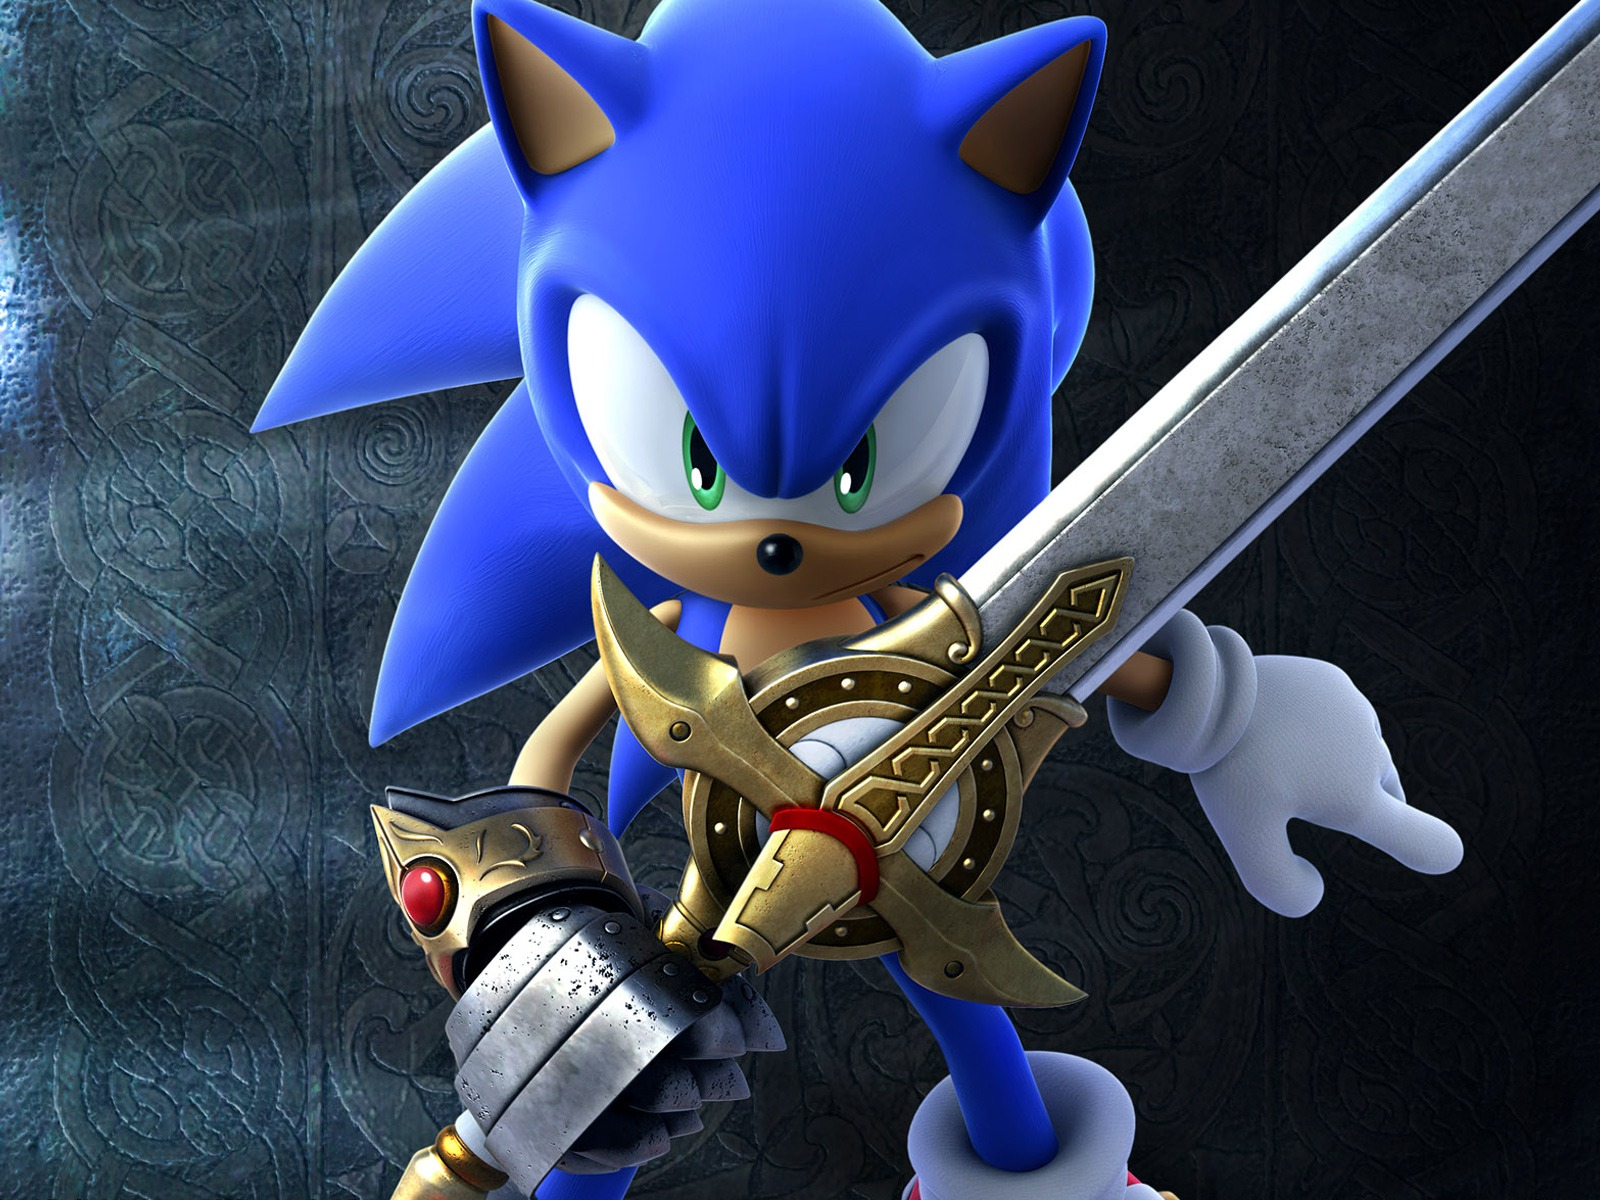 Sonic and the Black Knight Wallpaper Sonic Games Wallpapers in jpg